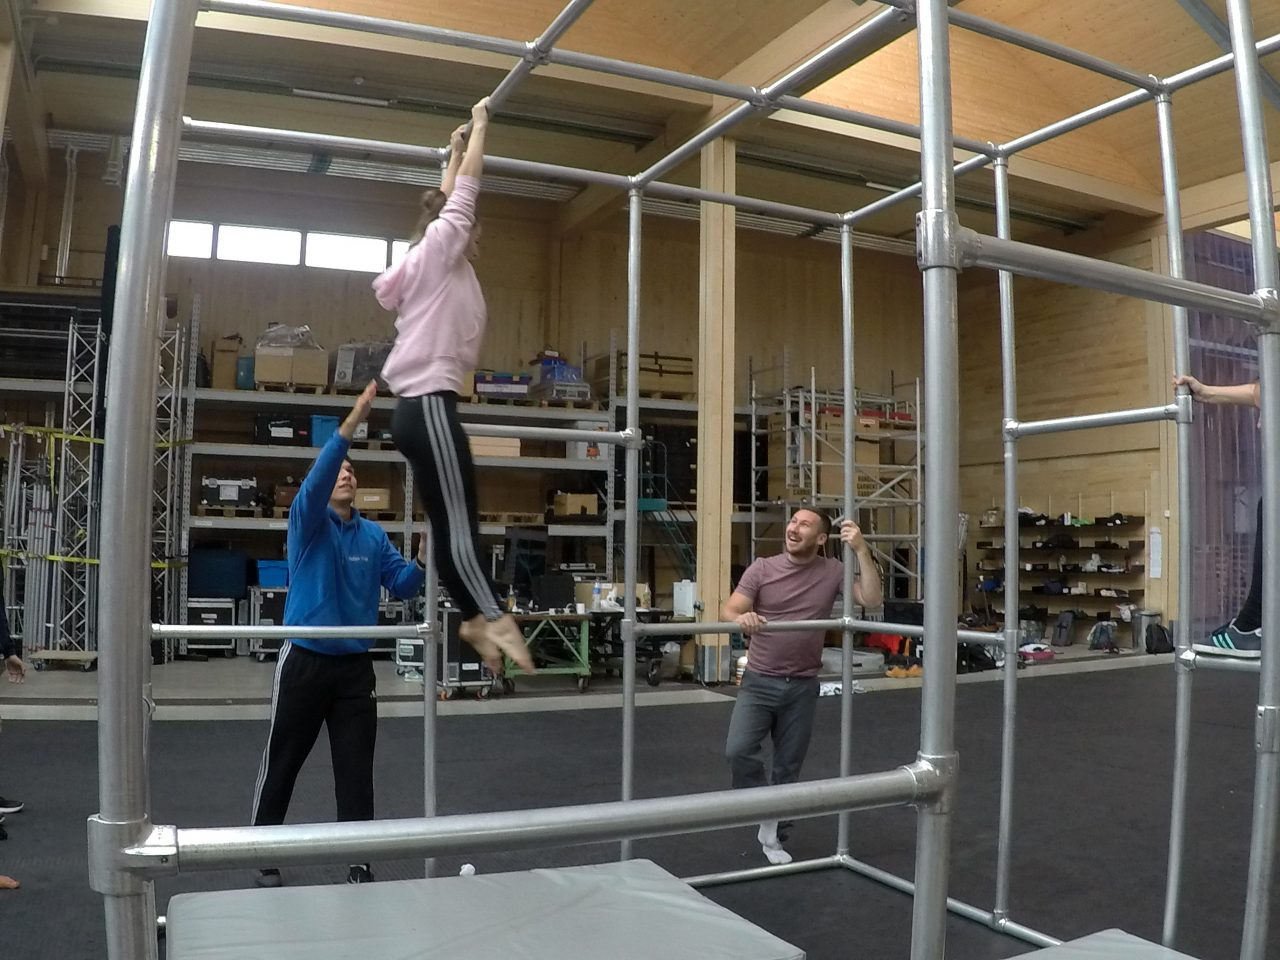 Danny supervising student swinging in the Captive cage